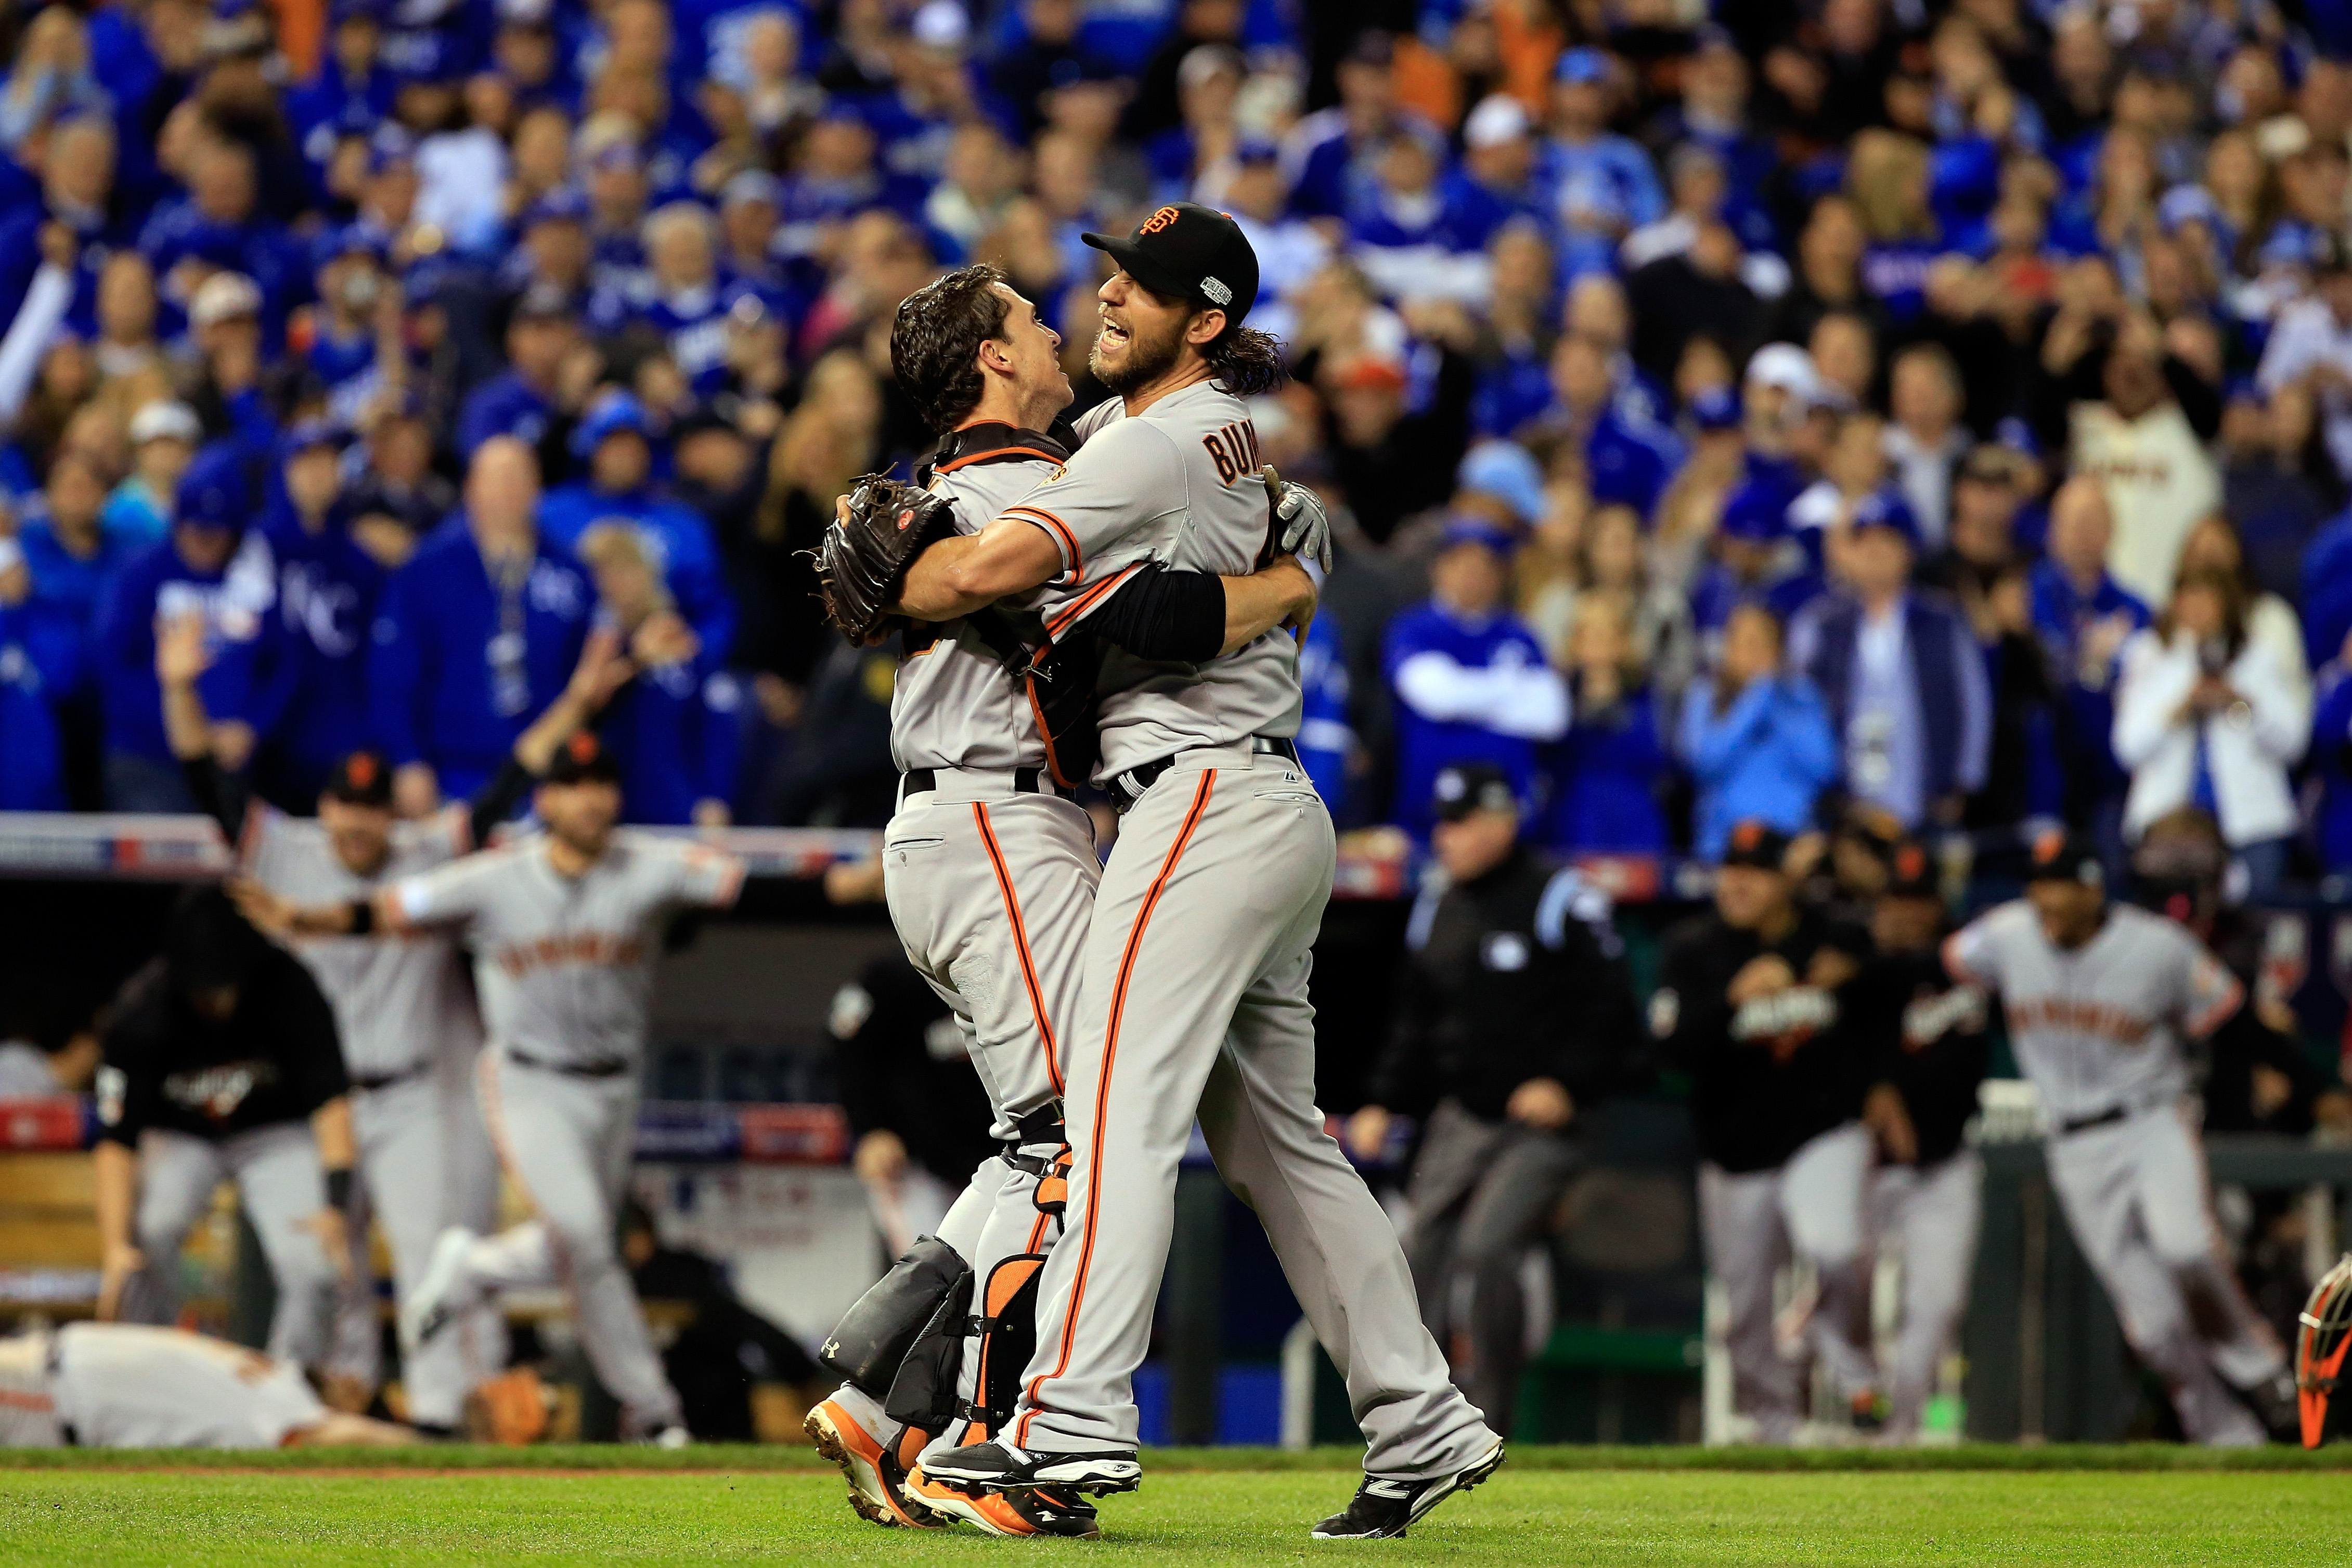 Giants catcher Buster Posey and Madison Bumgarner celebrate after defeating the Royals to win Game Seven of the 2014 World Series, 3-2.